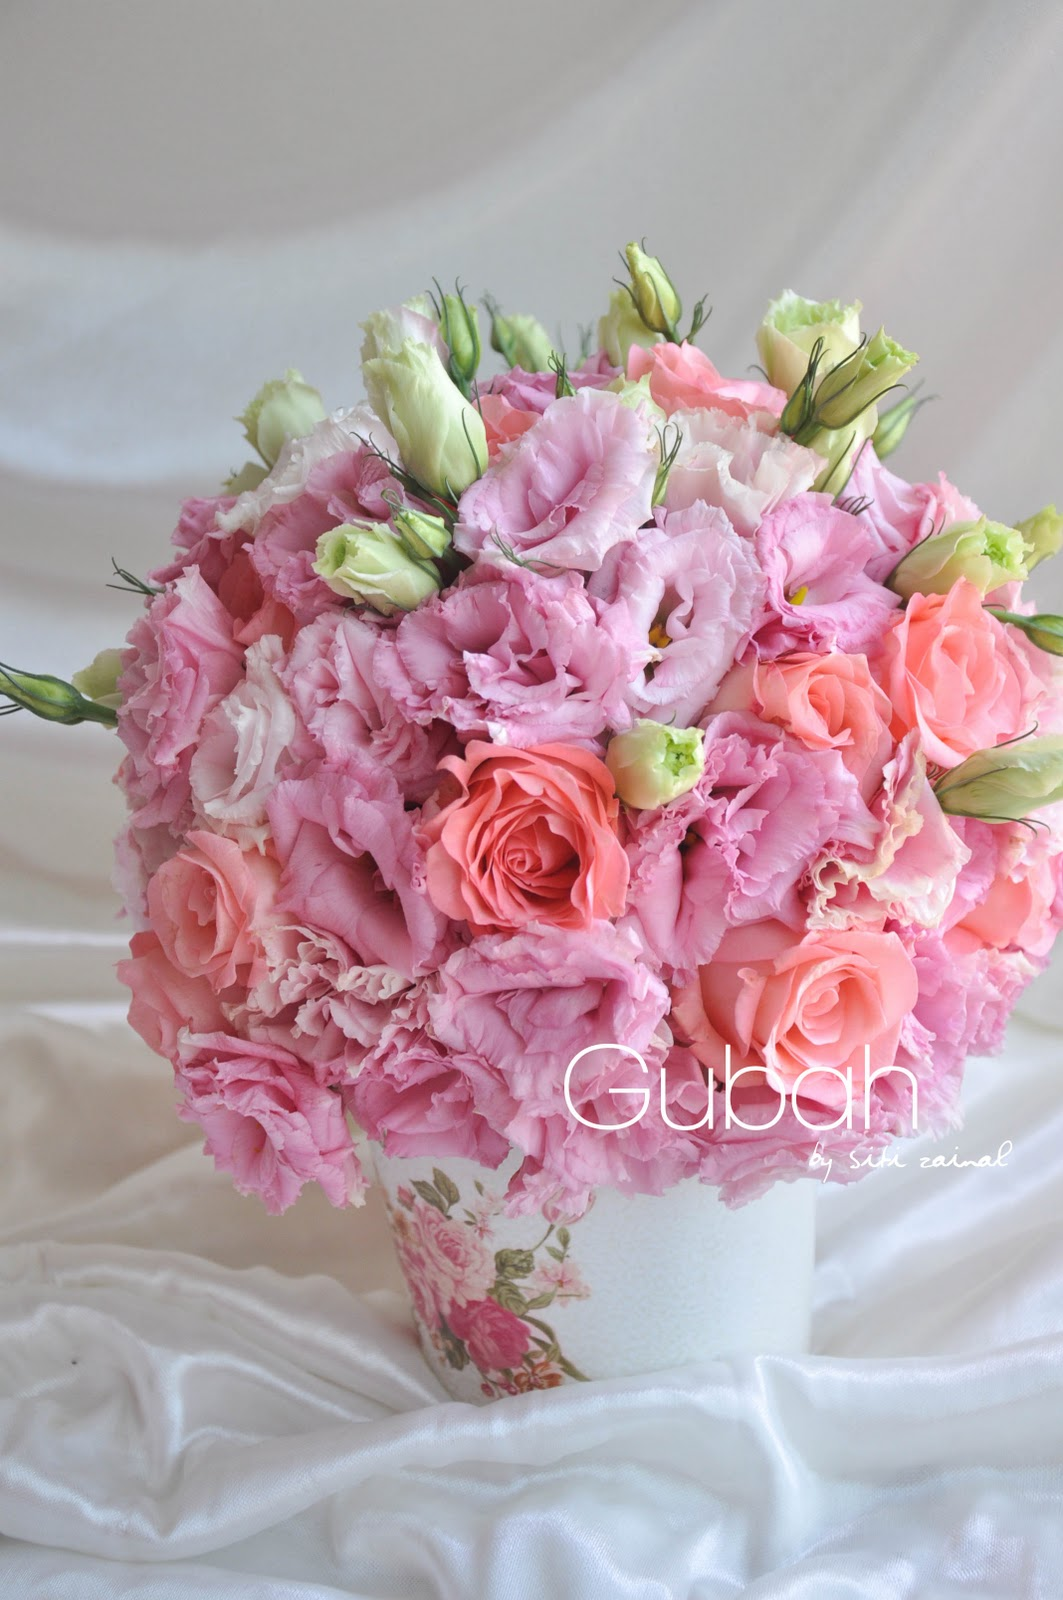 Gubah by siti zainal hand bouquets debby hand bouquets debby izmirmasajfo